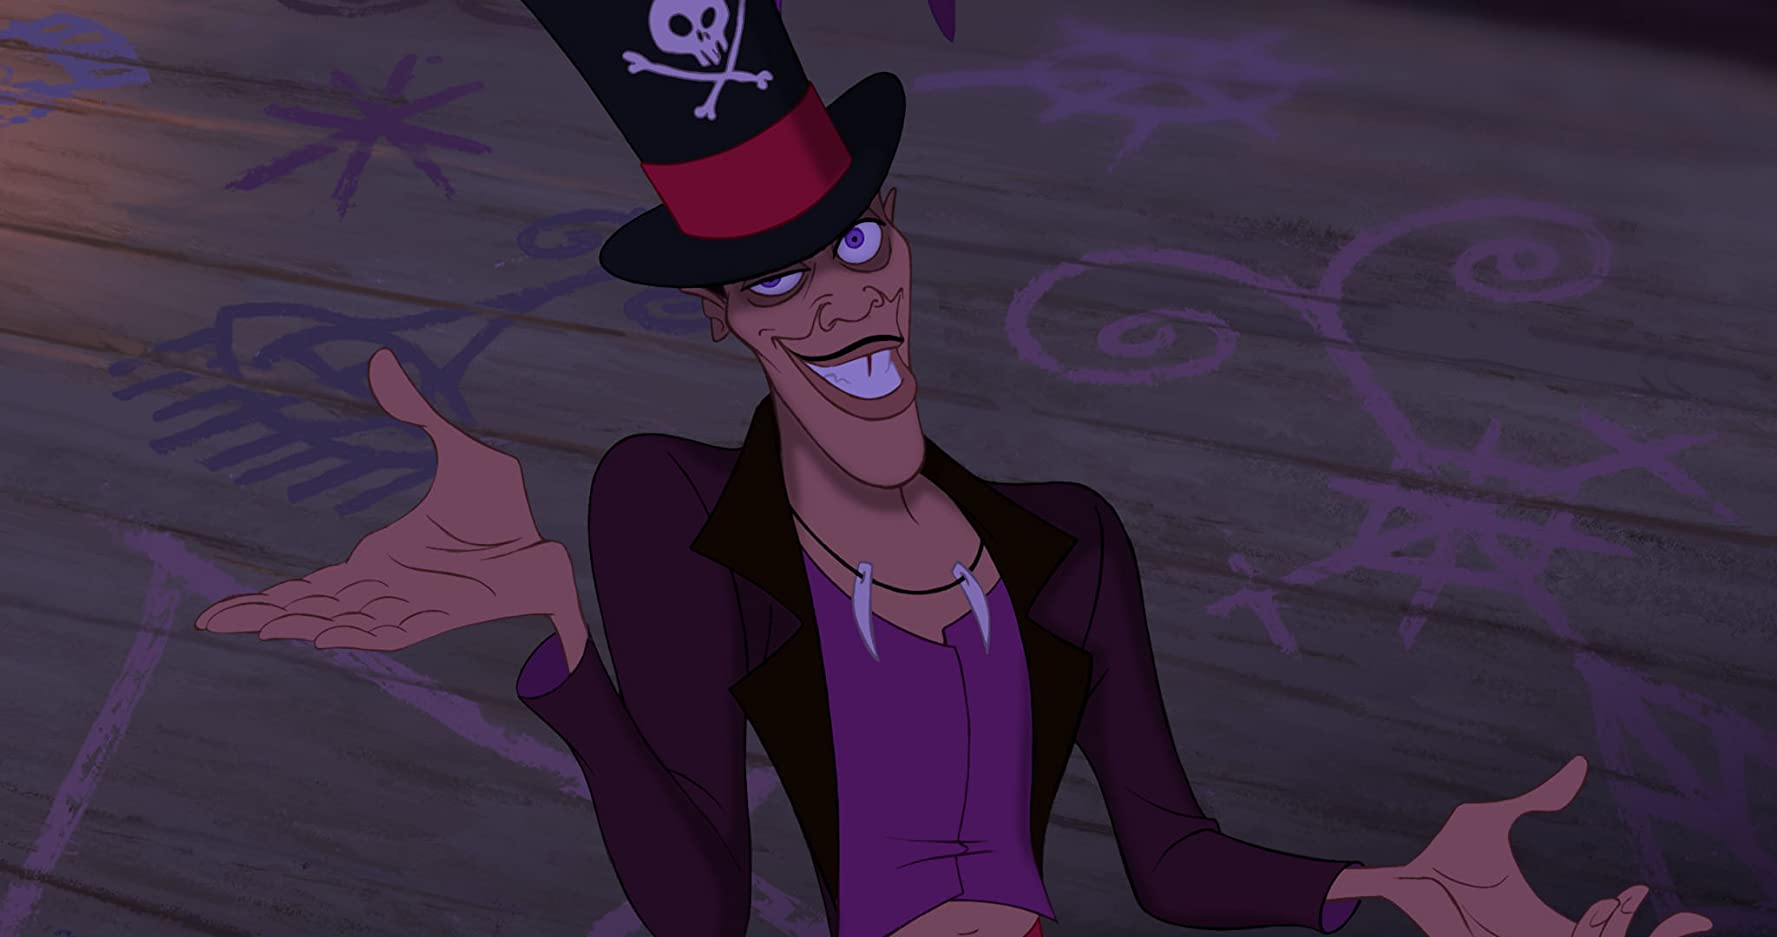 Keith David in The Princess and the Frog (2009)